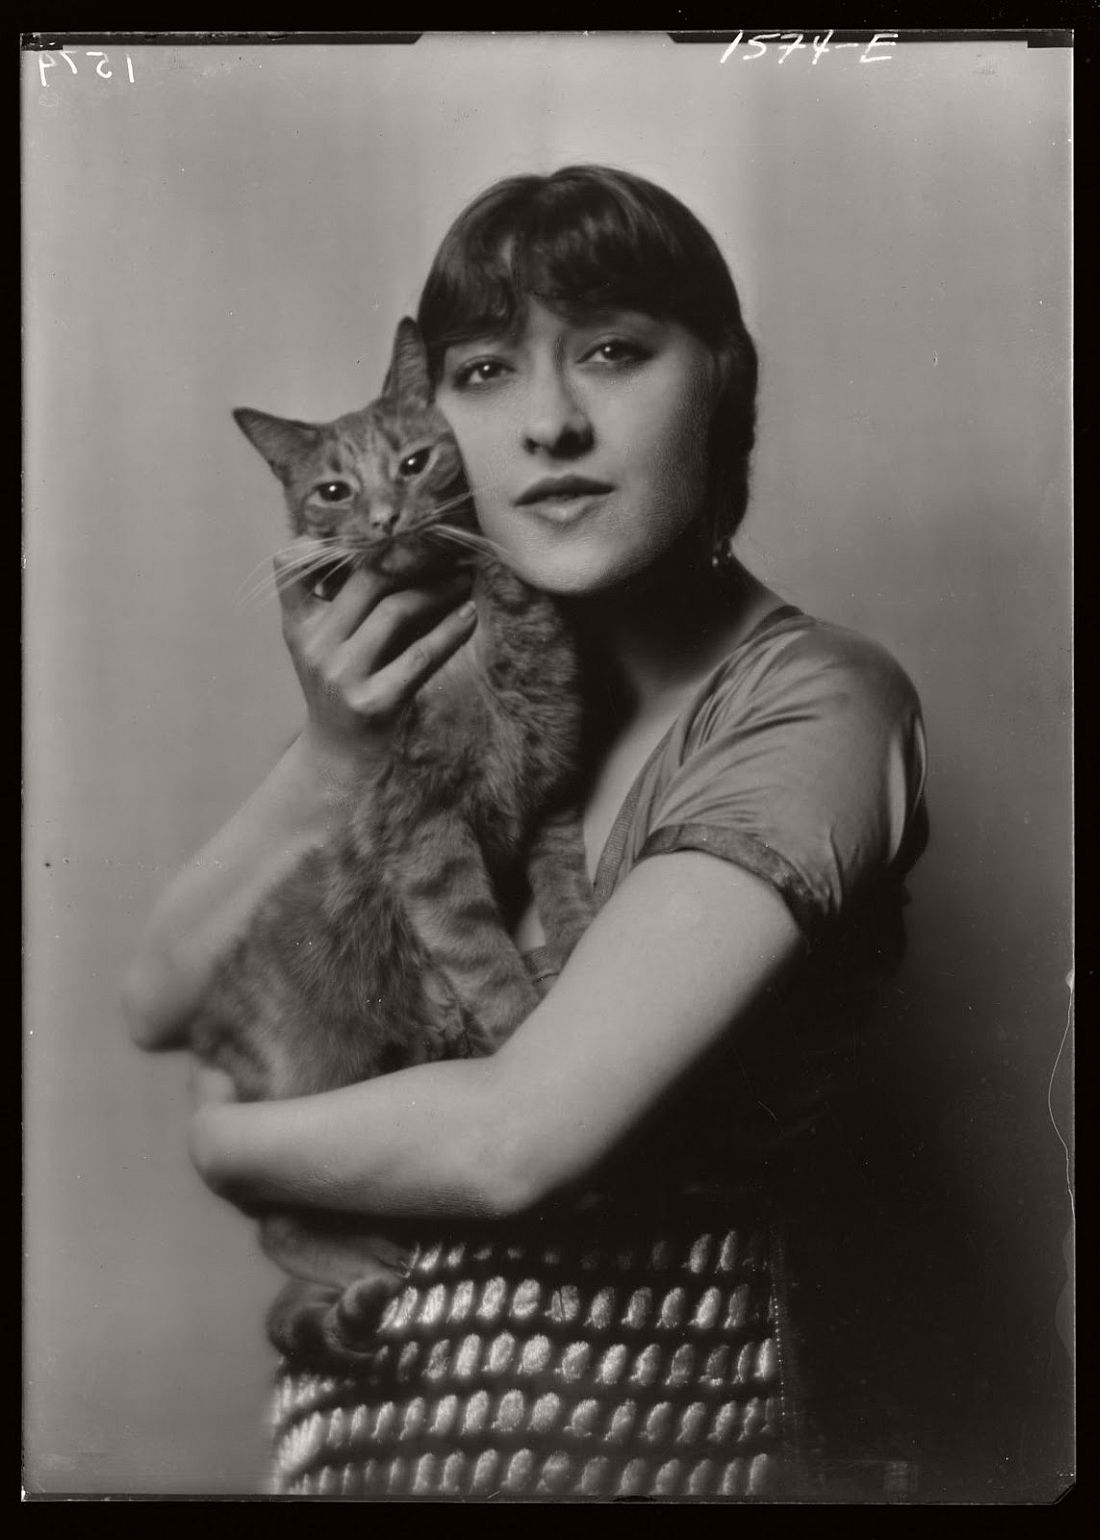 arnold-genthe-1910s-vintage-studio-portraits-of-girls-with-cat-06